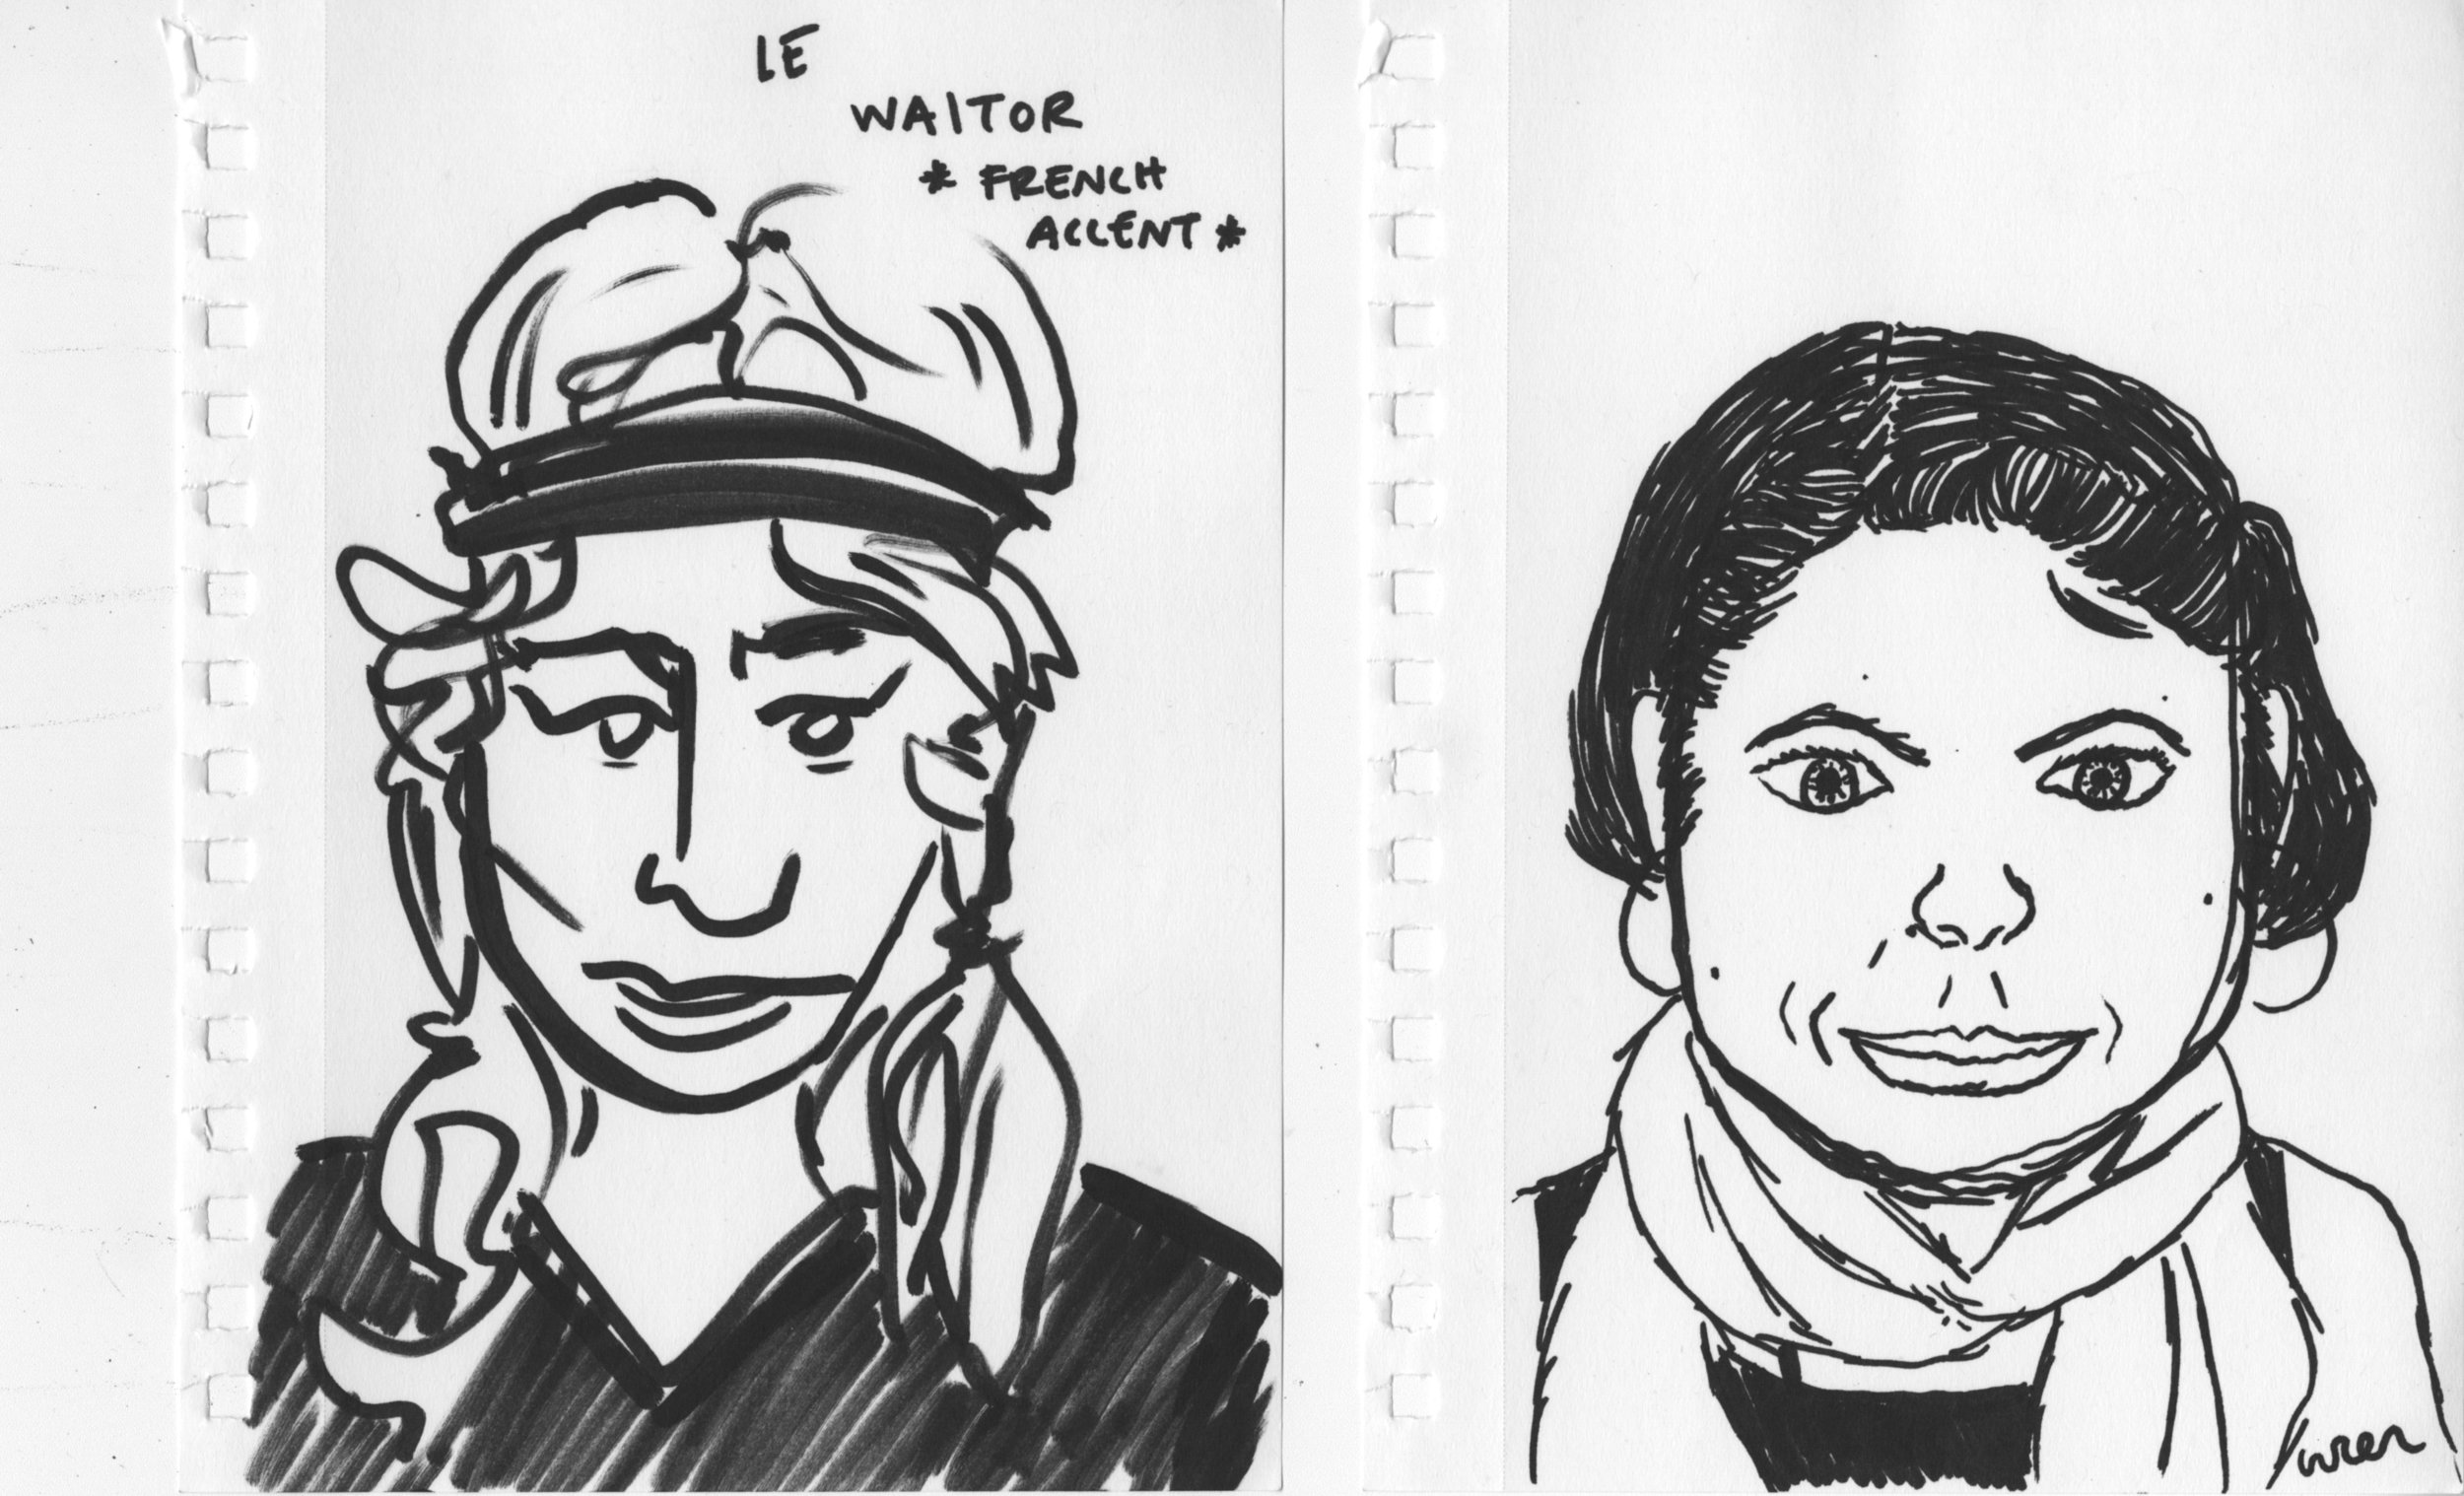 56_Wren_Le Waitor (french accent).jpg